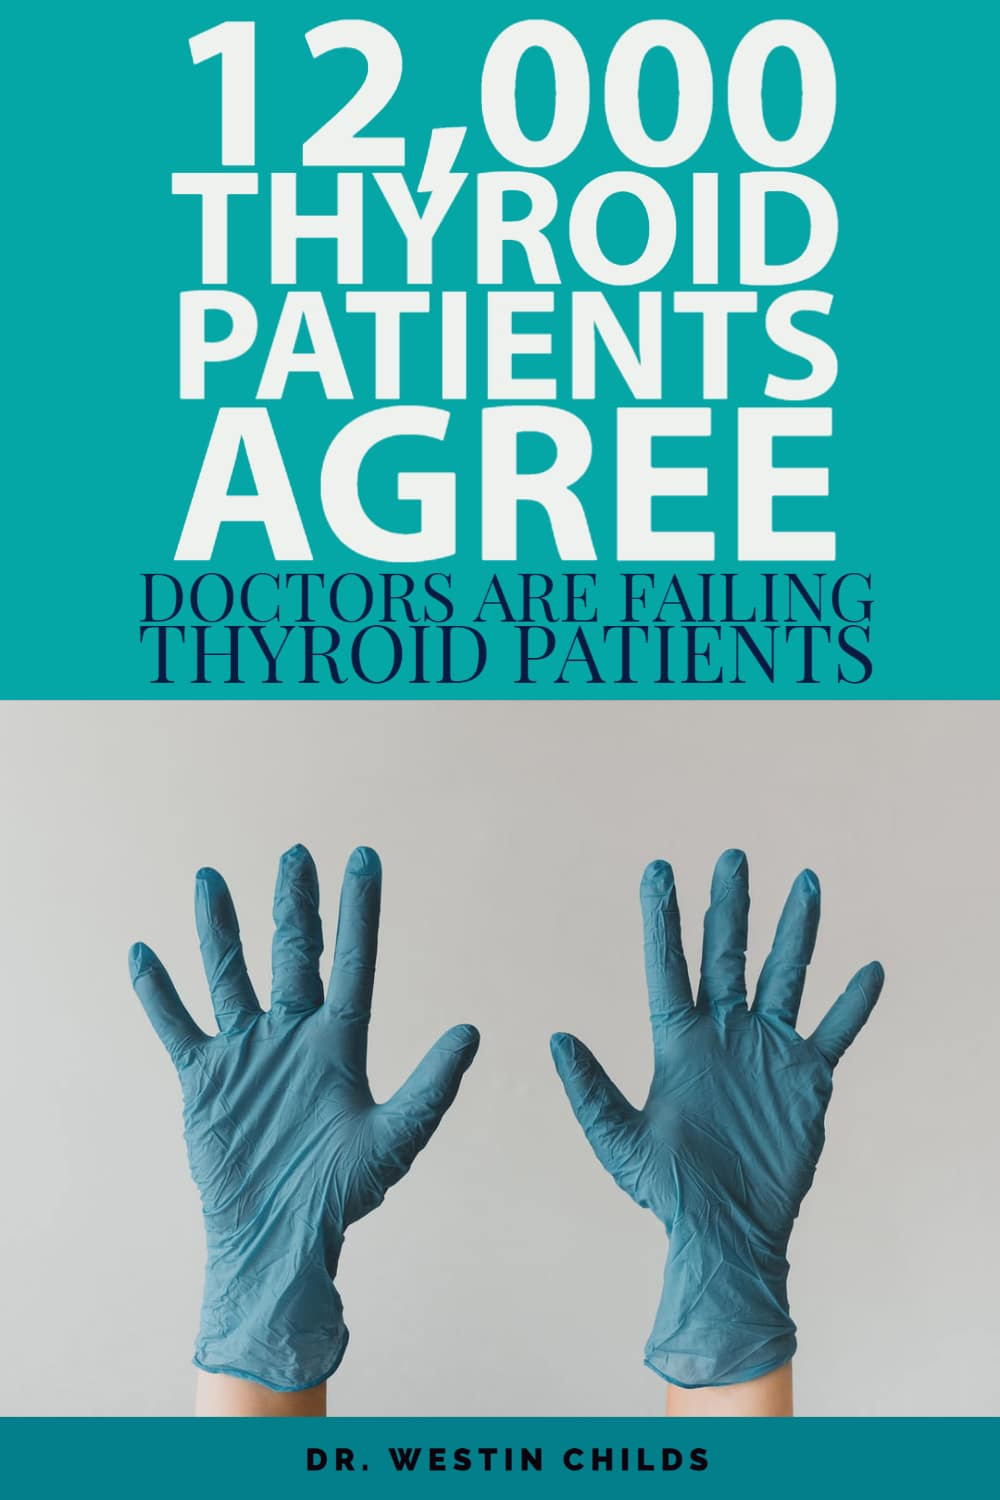 thyroid survey shows patients are not happy with thyroid treatment